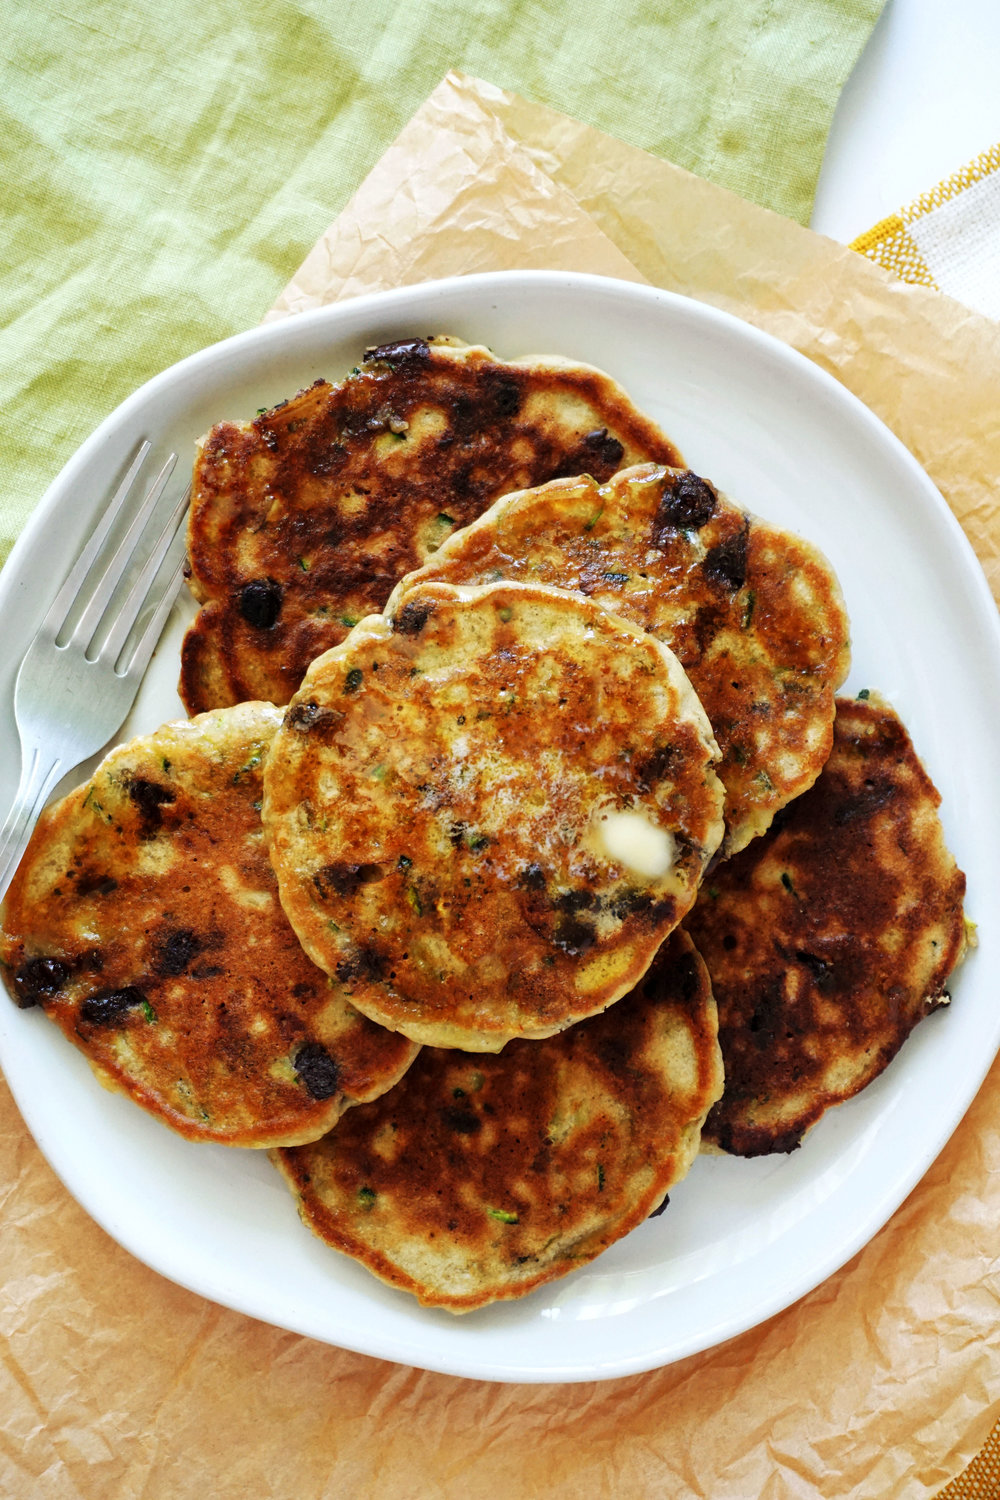 Whole-Grain Chocolate Chip Zucchini Pancakes (GF)